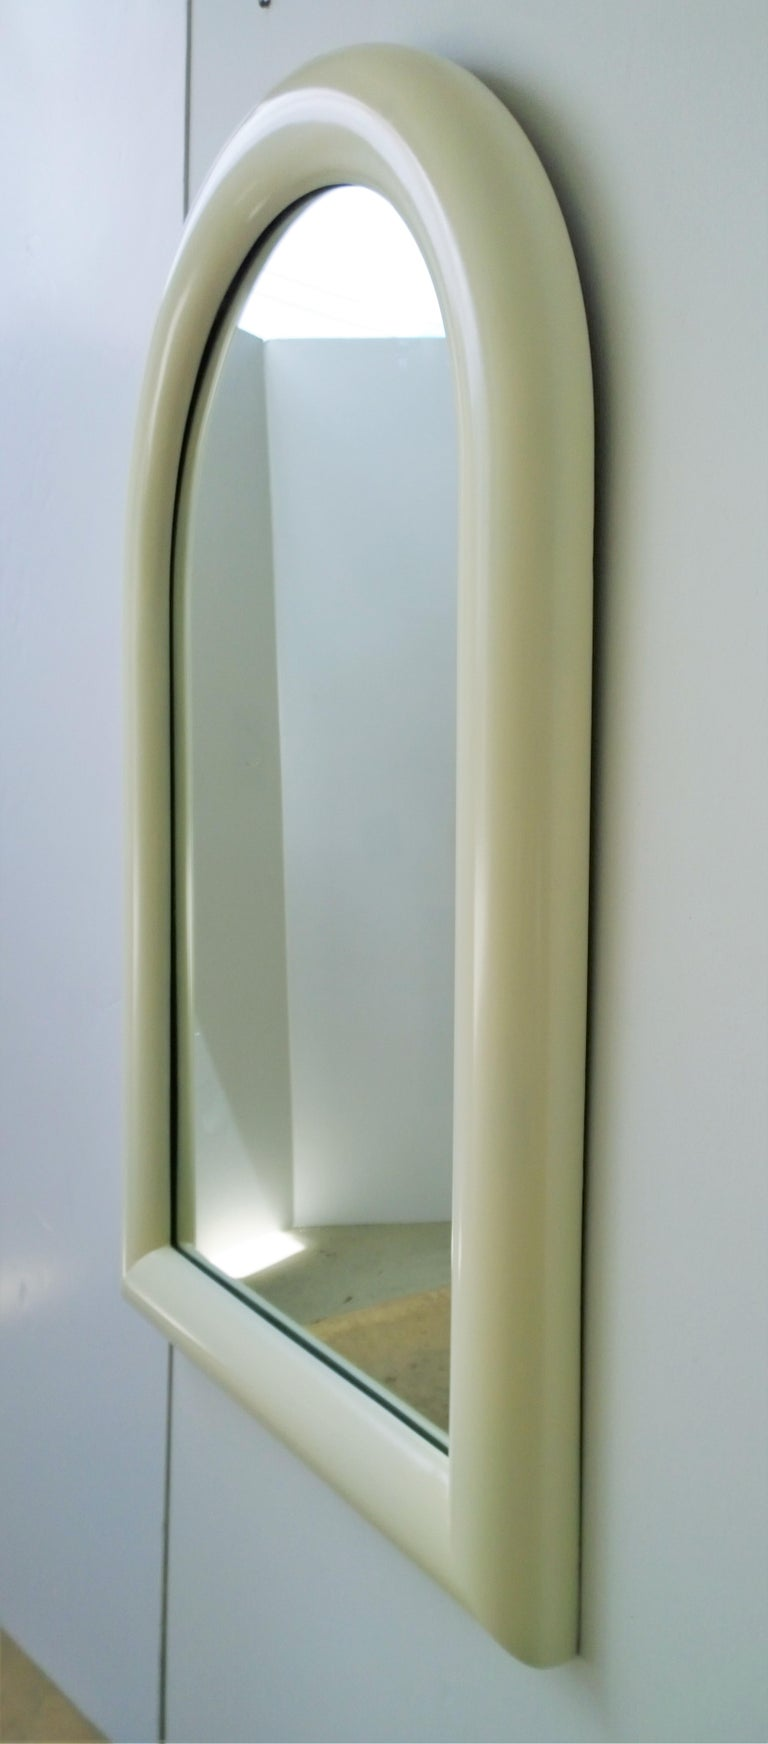 Canadian Pierre Cardin Attributed Arched Wall Mirror Newly Lacquered Wood in Off-White For Sale